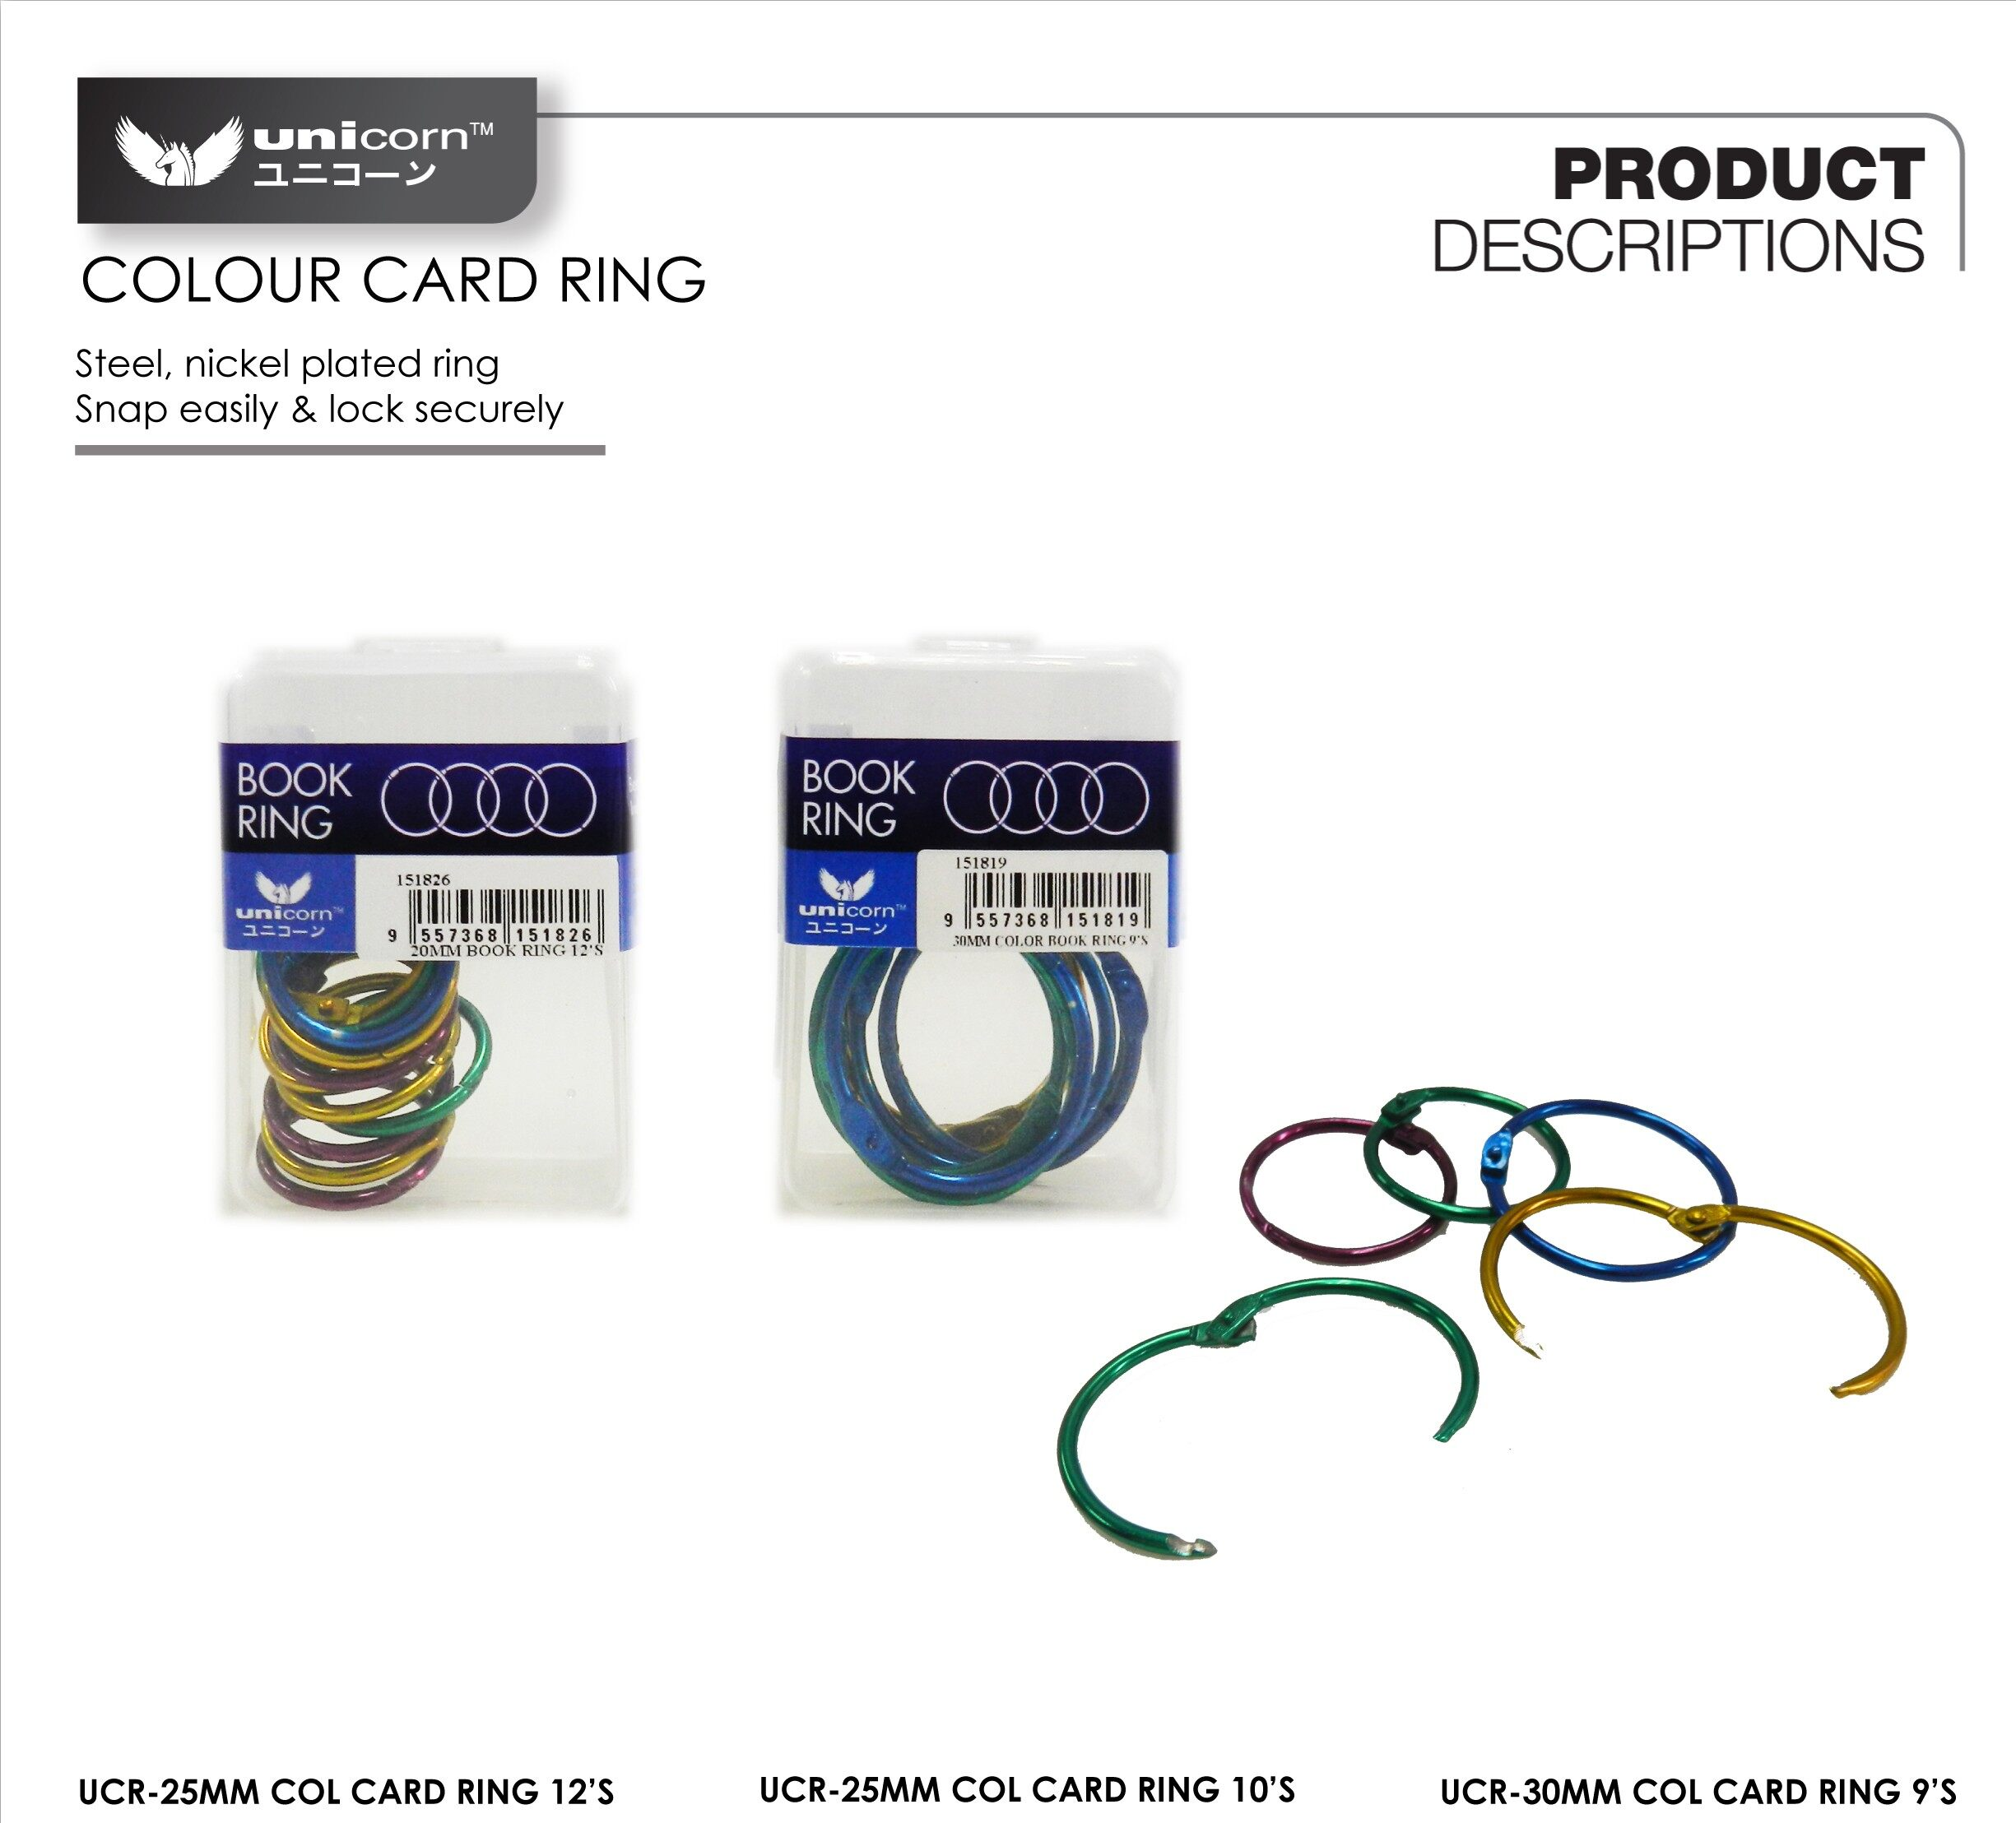 UNICORN UCR-25 25mm COLOUR CARD RING / BOOK RING 10s x 6bxs